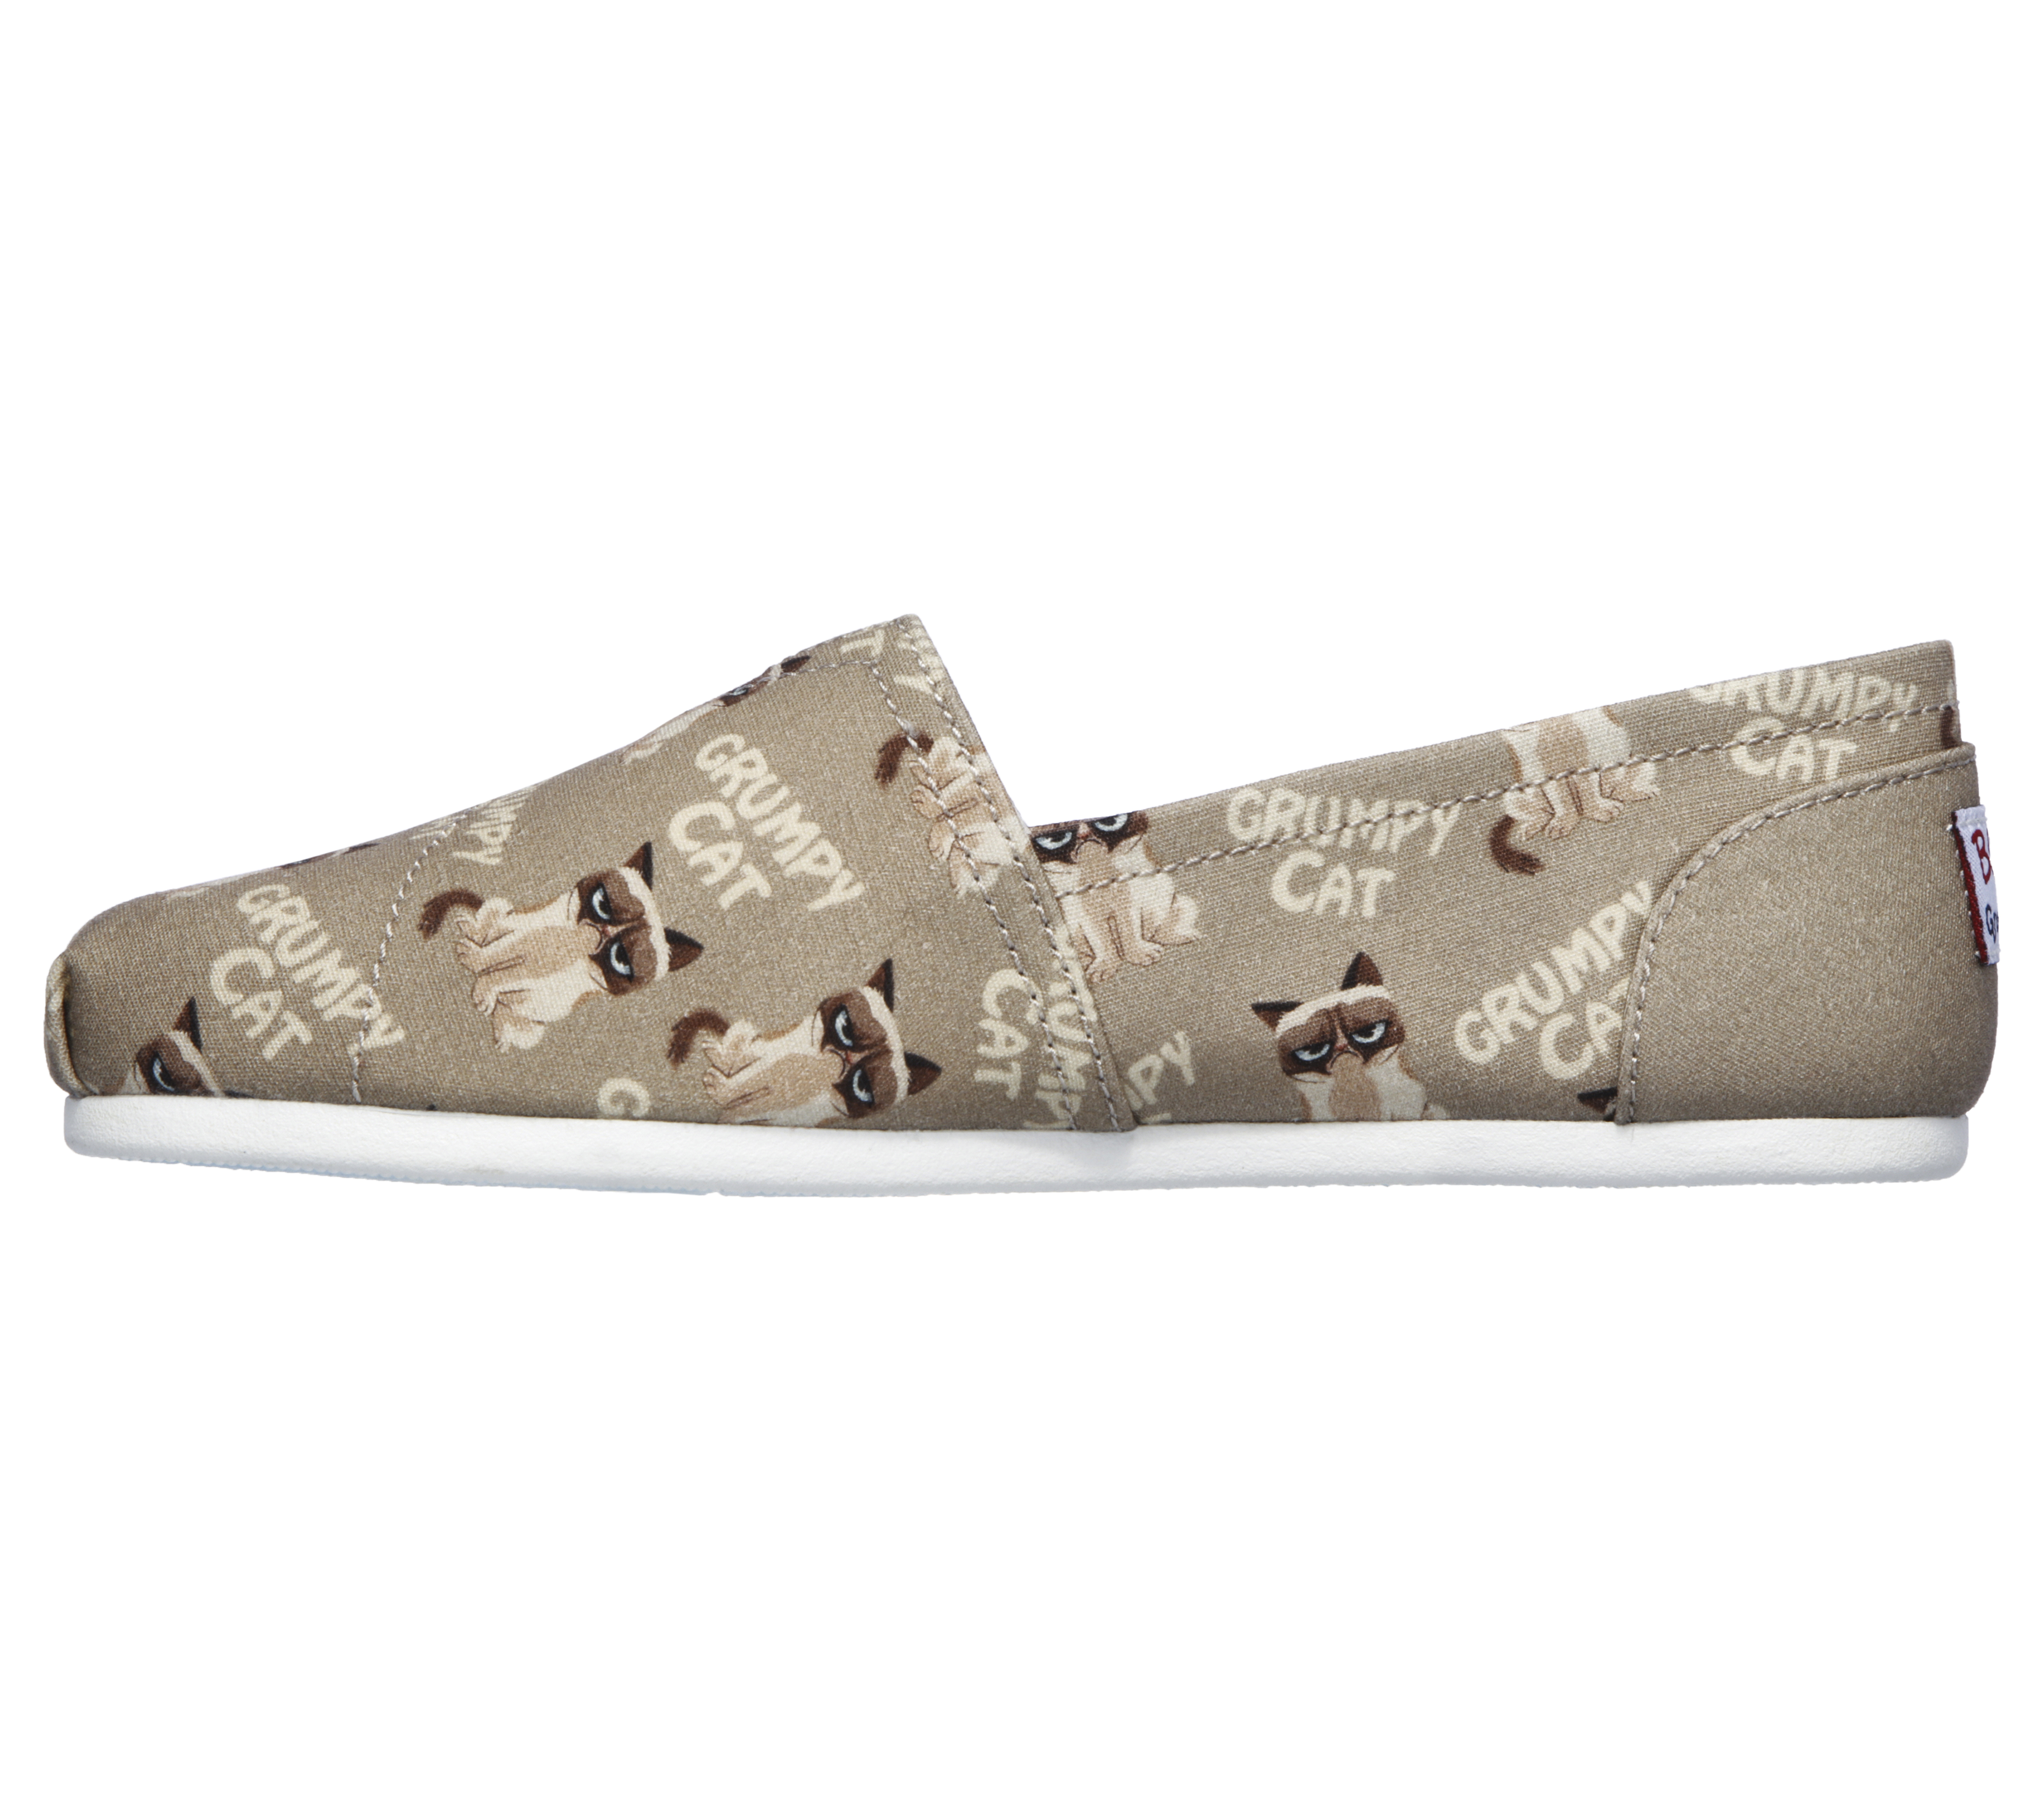 7ea659ce1a5e Womens Skechers BOBS Plush Crabby Kitty Taupe Multi in Tan